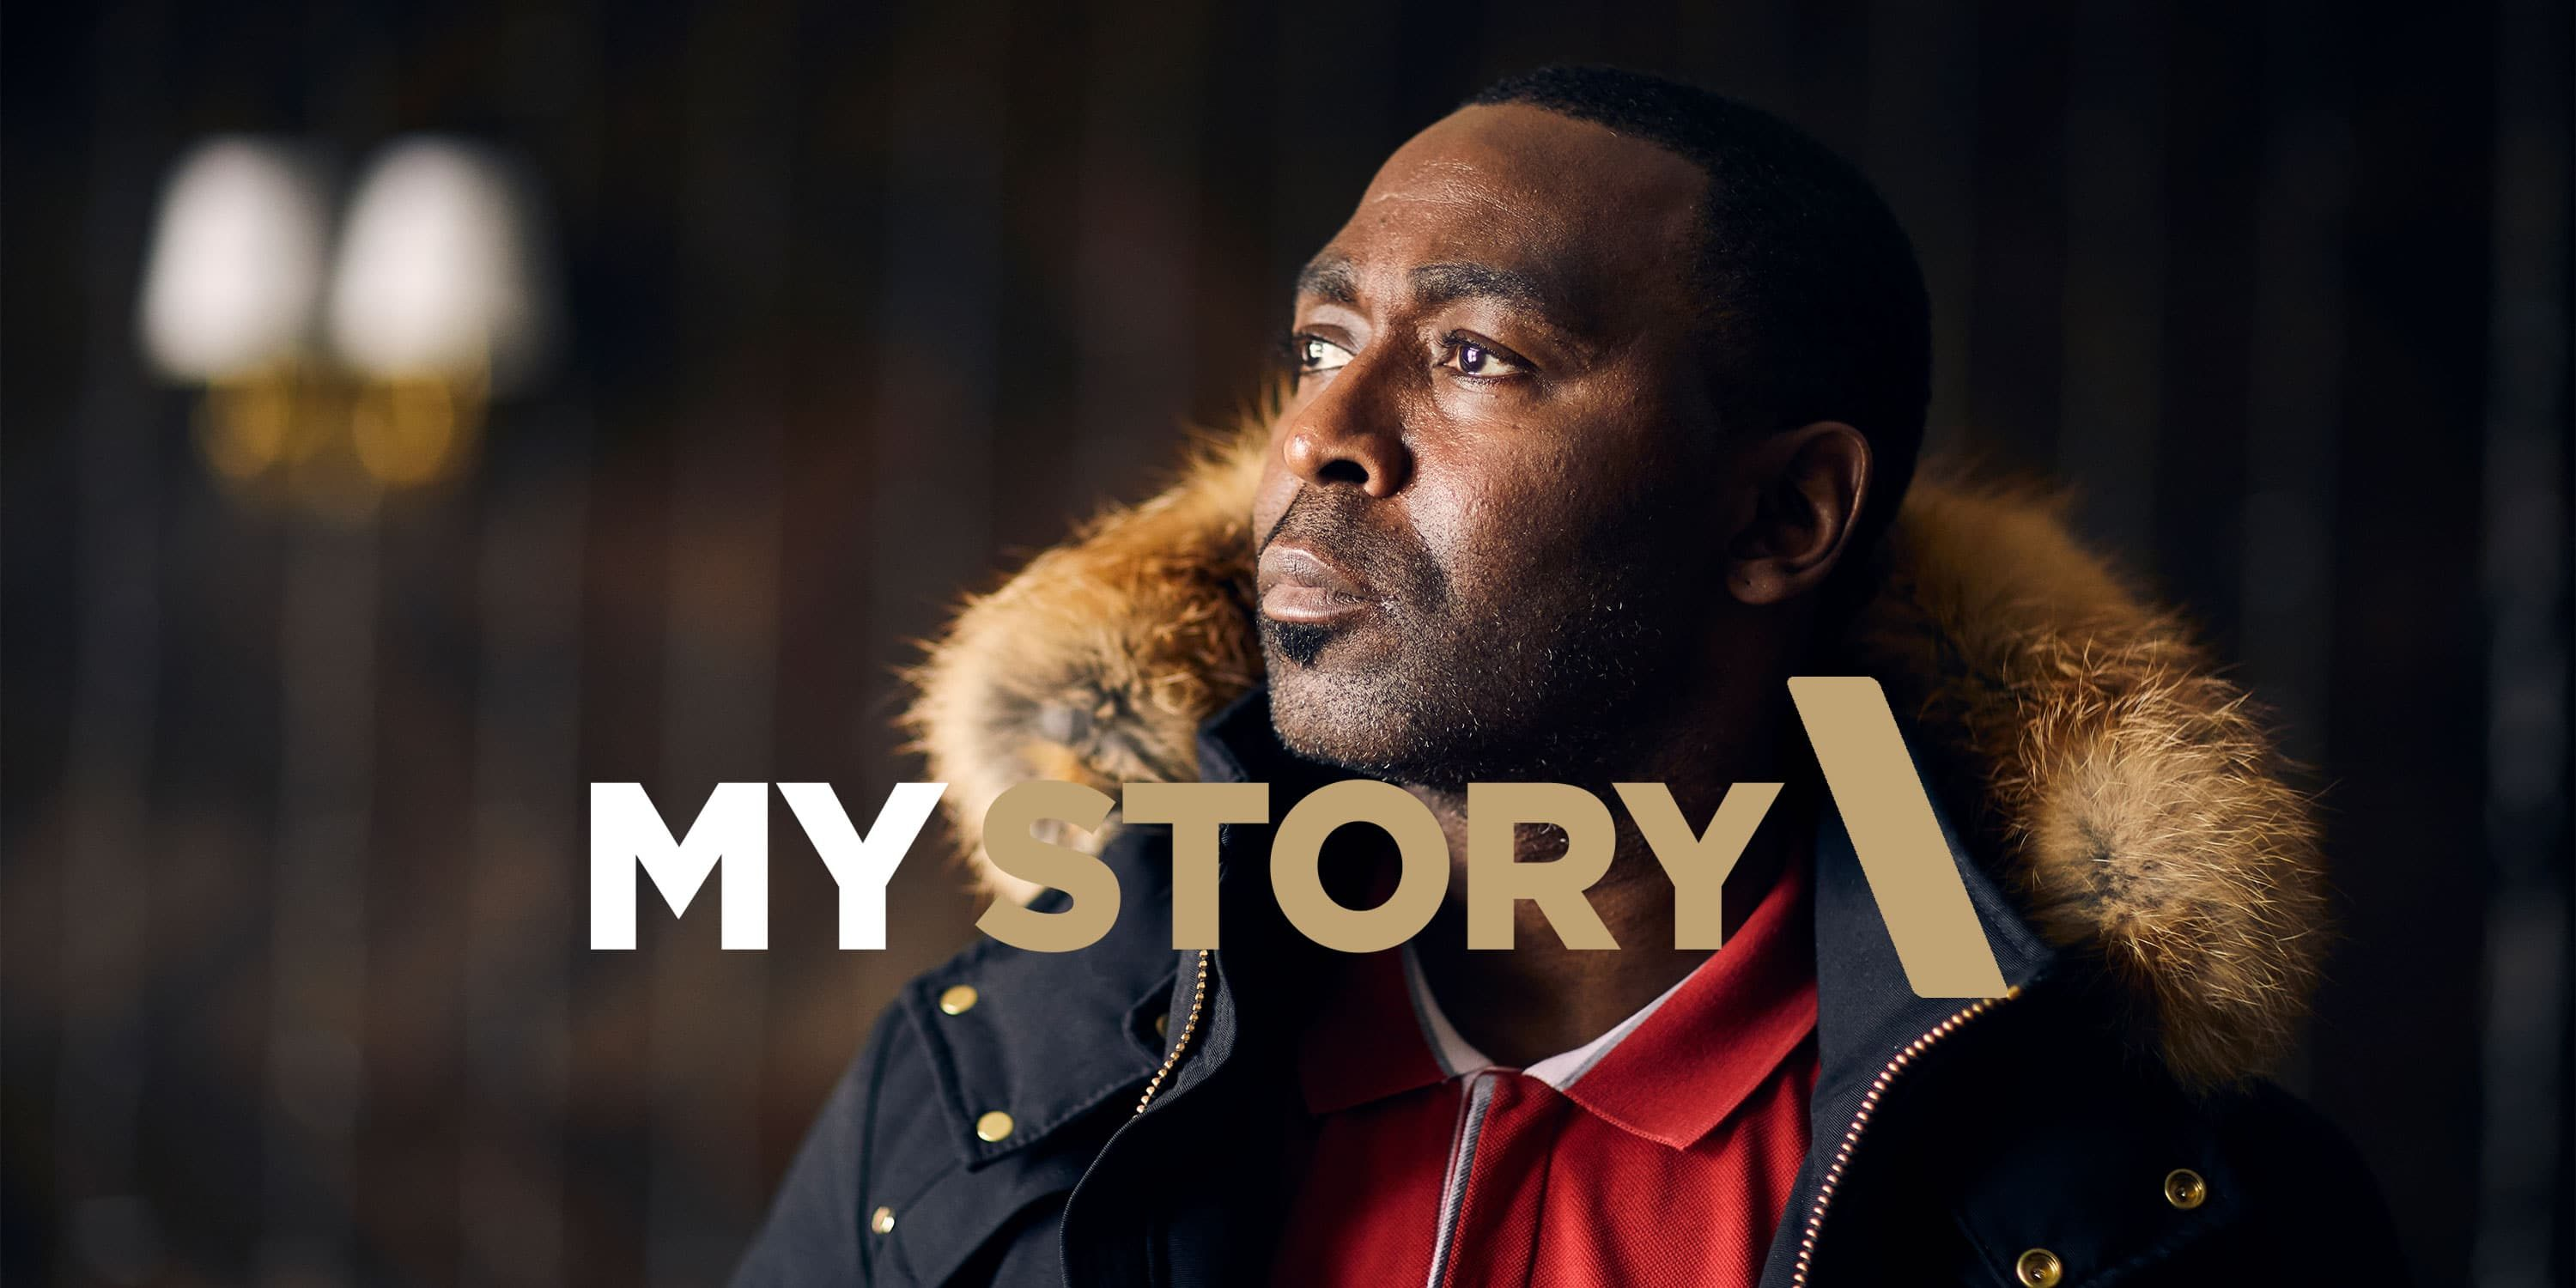 andy_cole_my_story